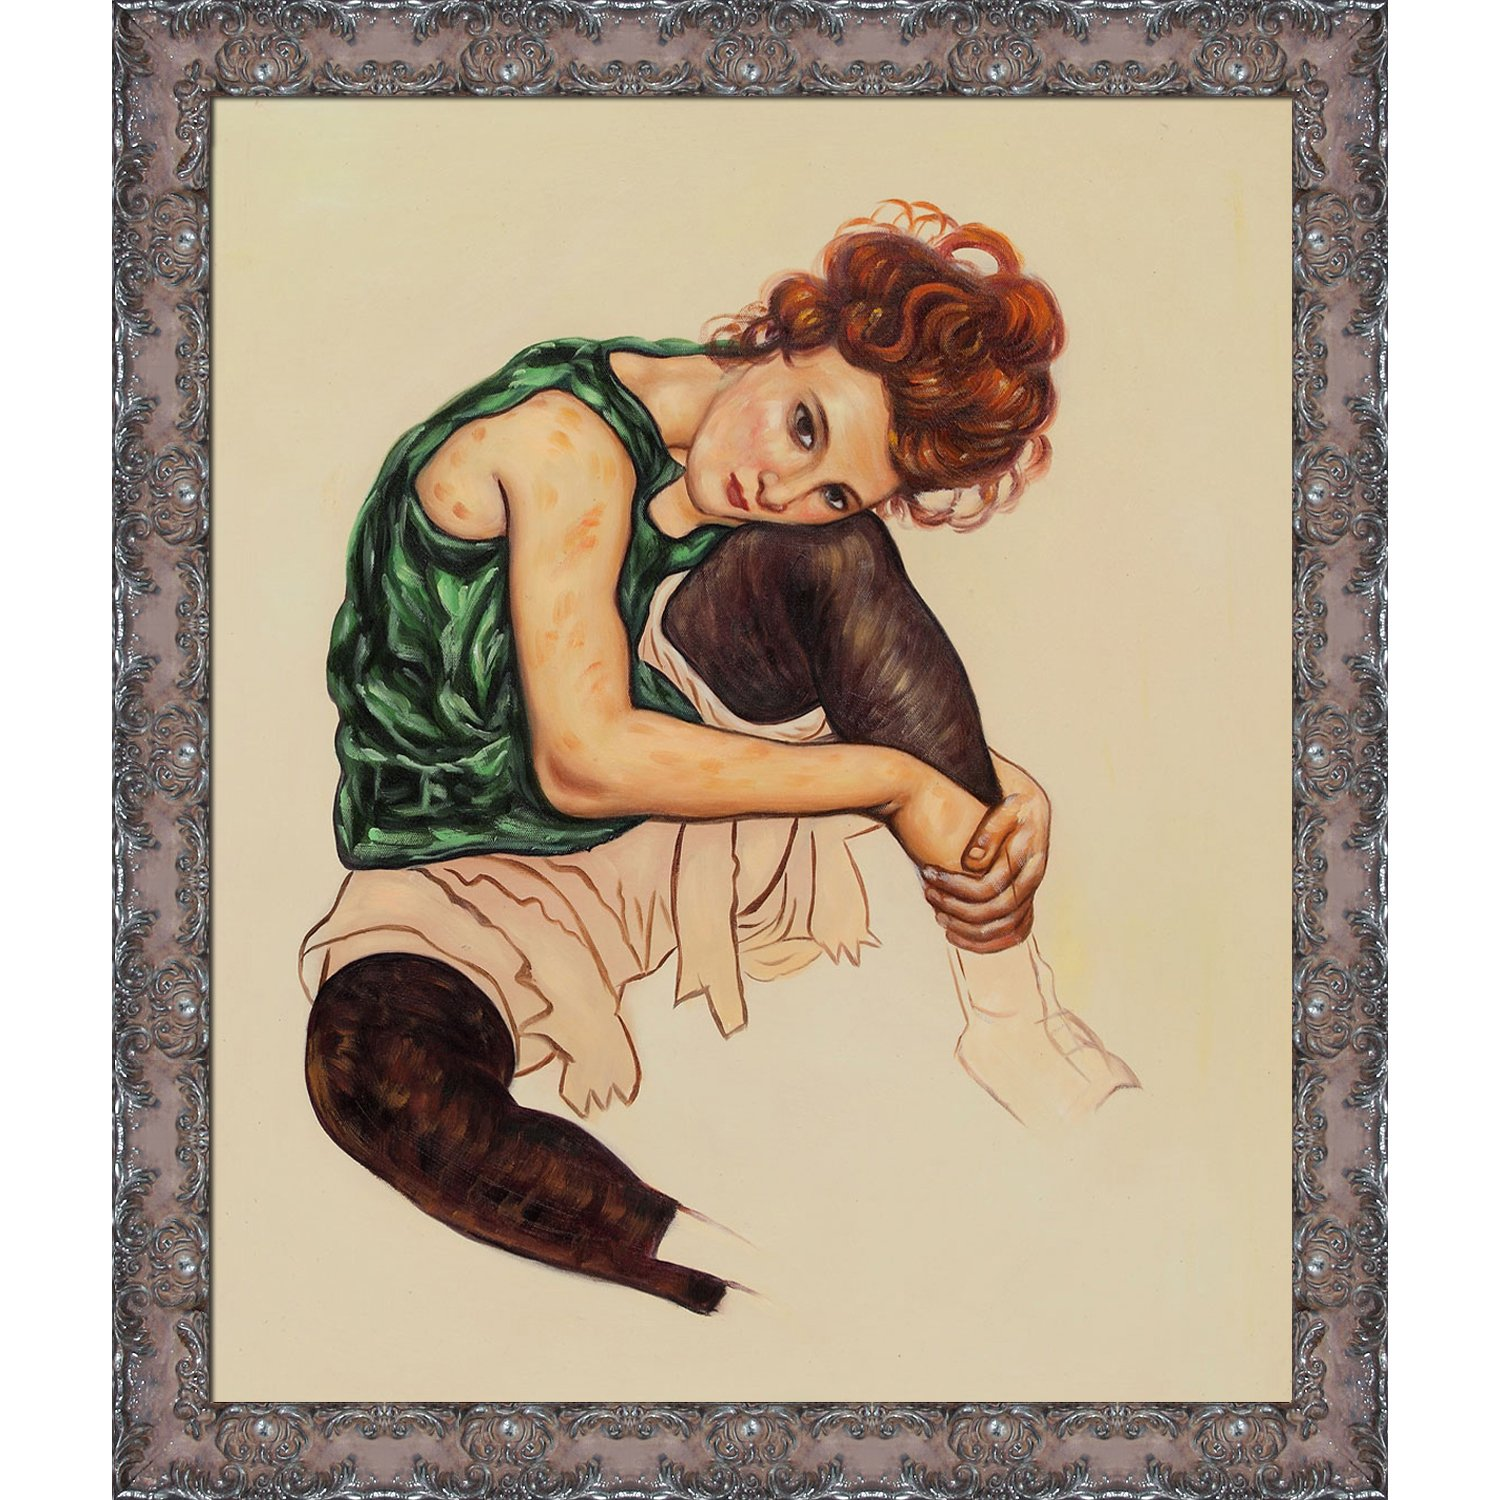 overstockArt Seated Woman with Legs Drawn Up Framed Hand Painted Oil on Canvas